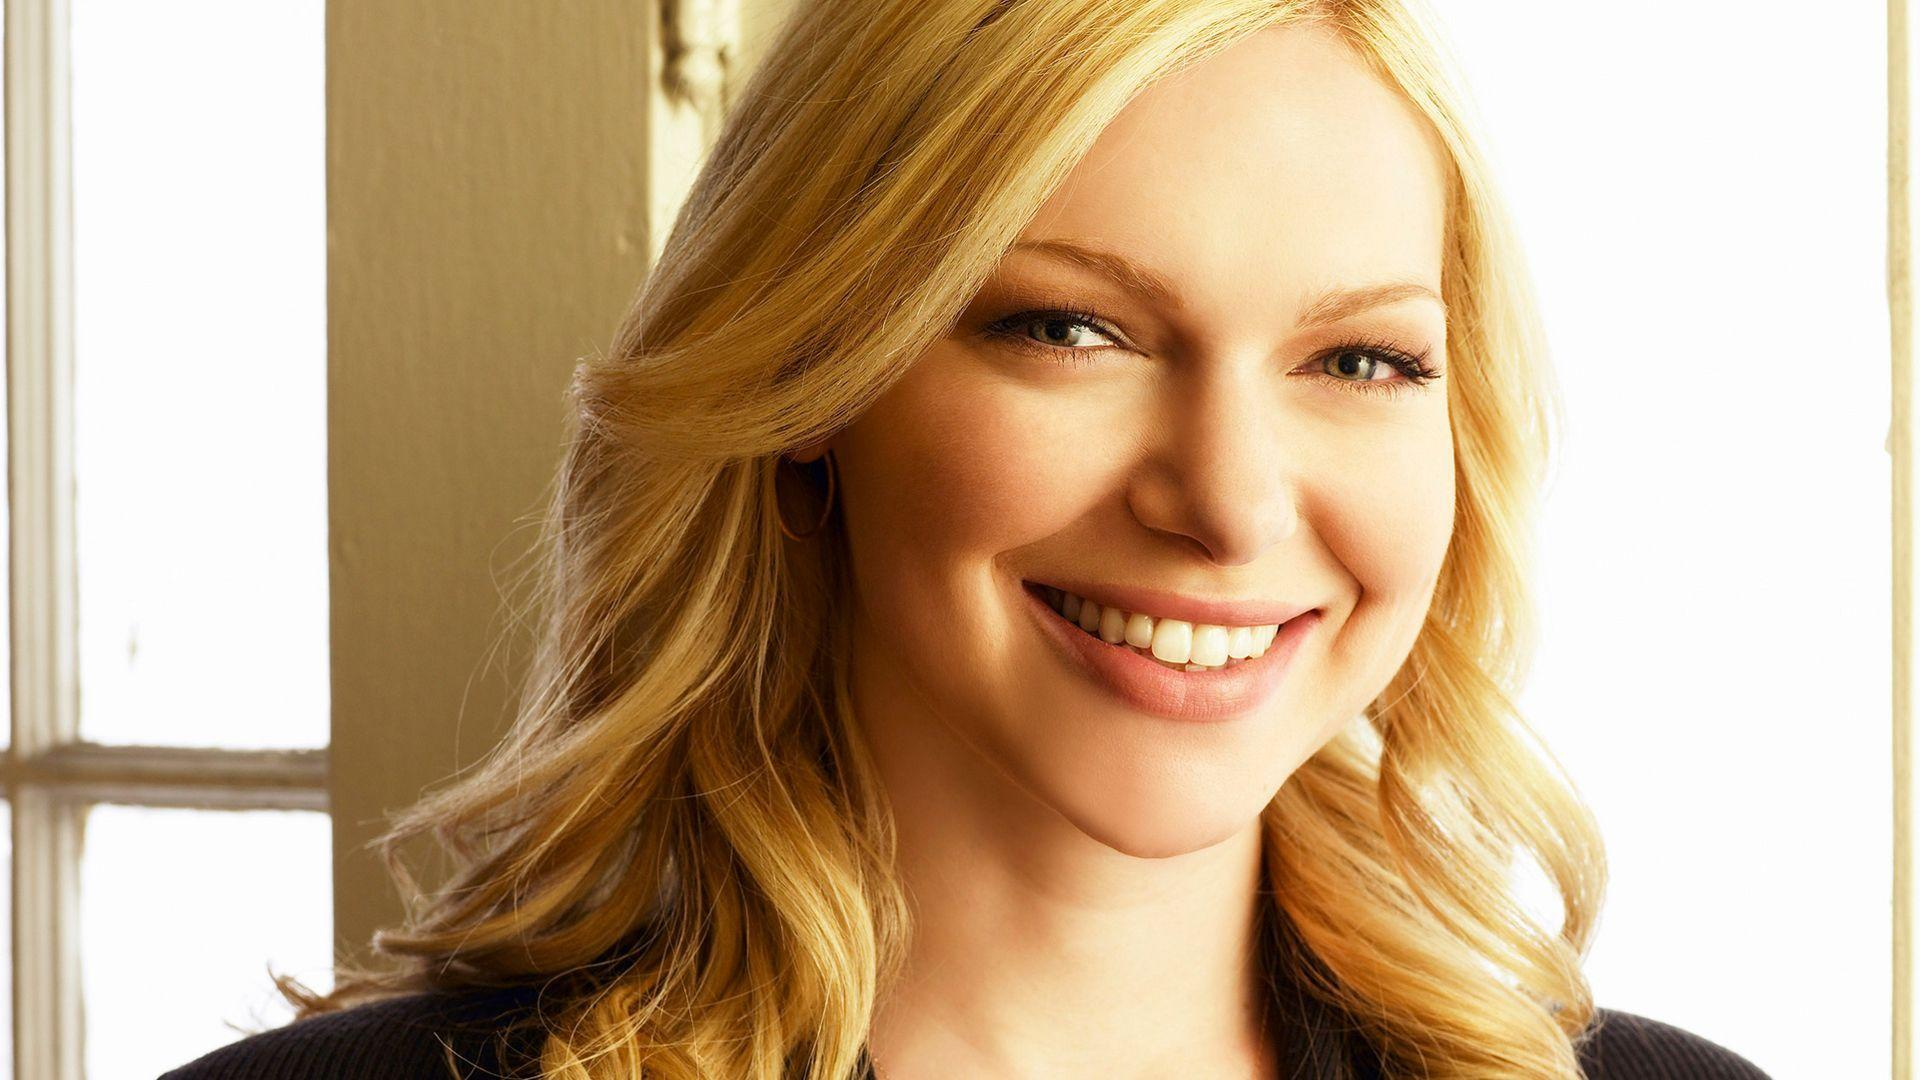 laura prepon wallpapers